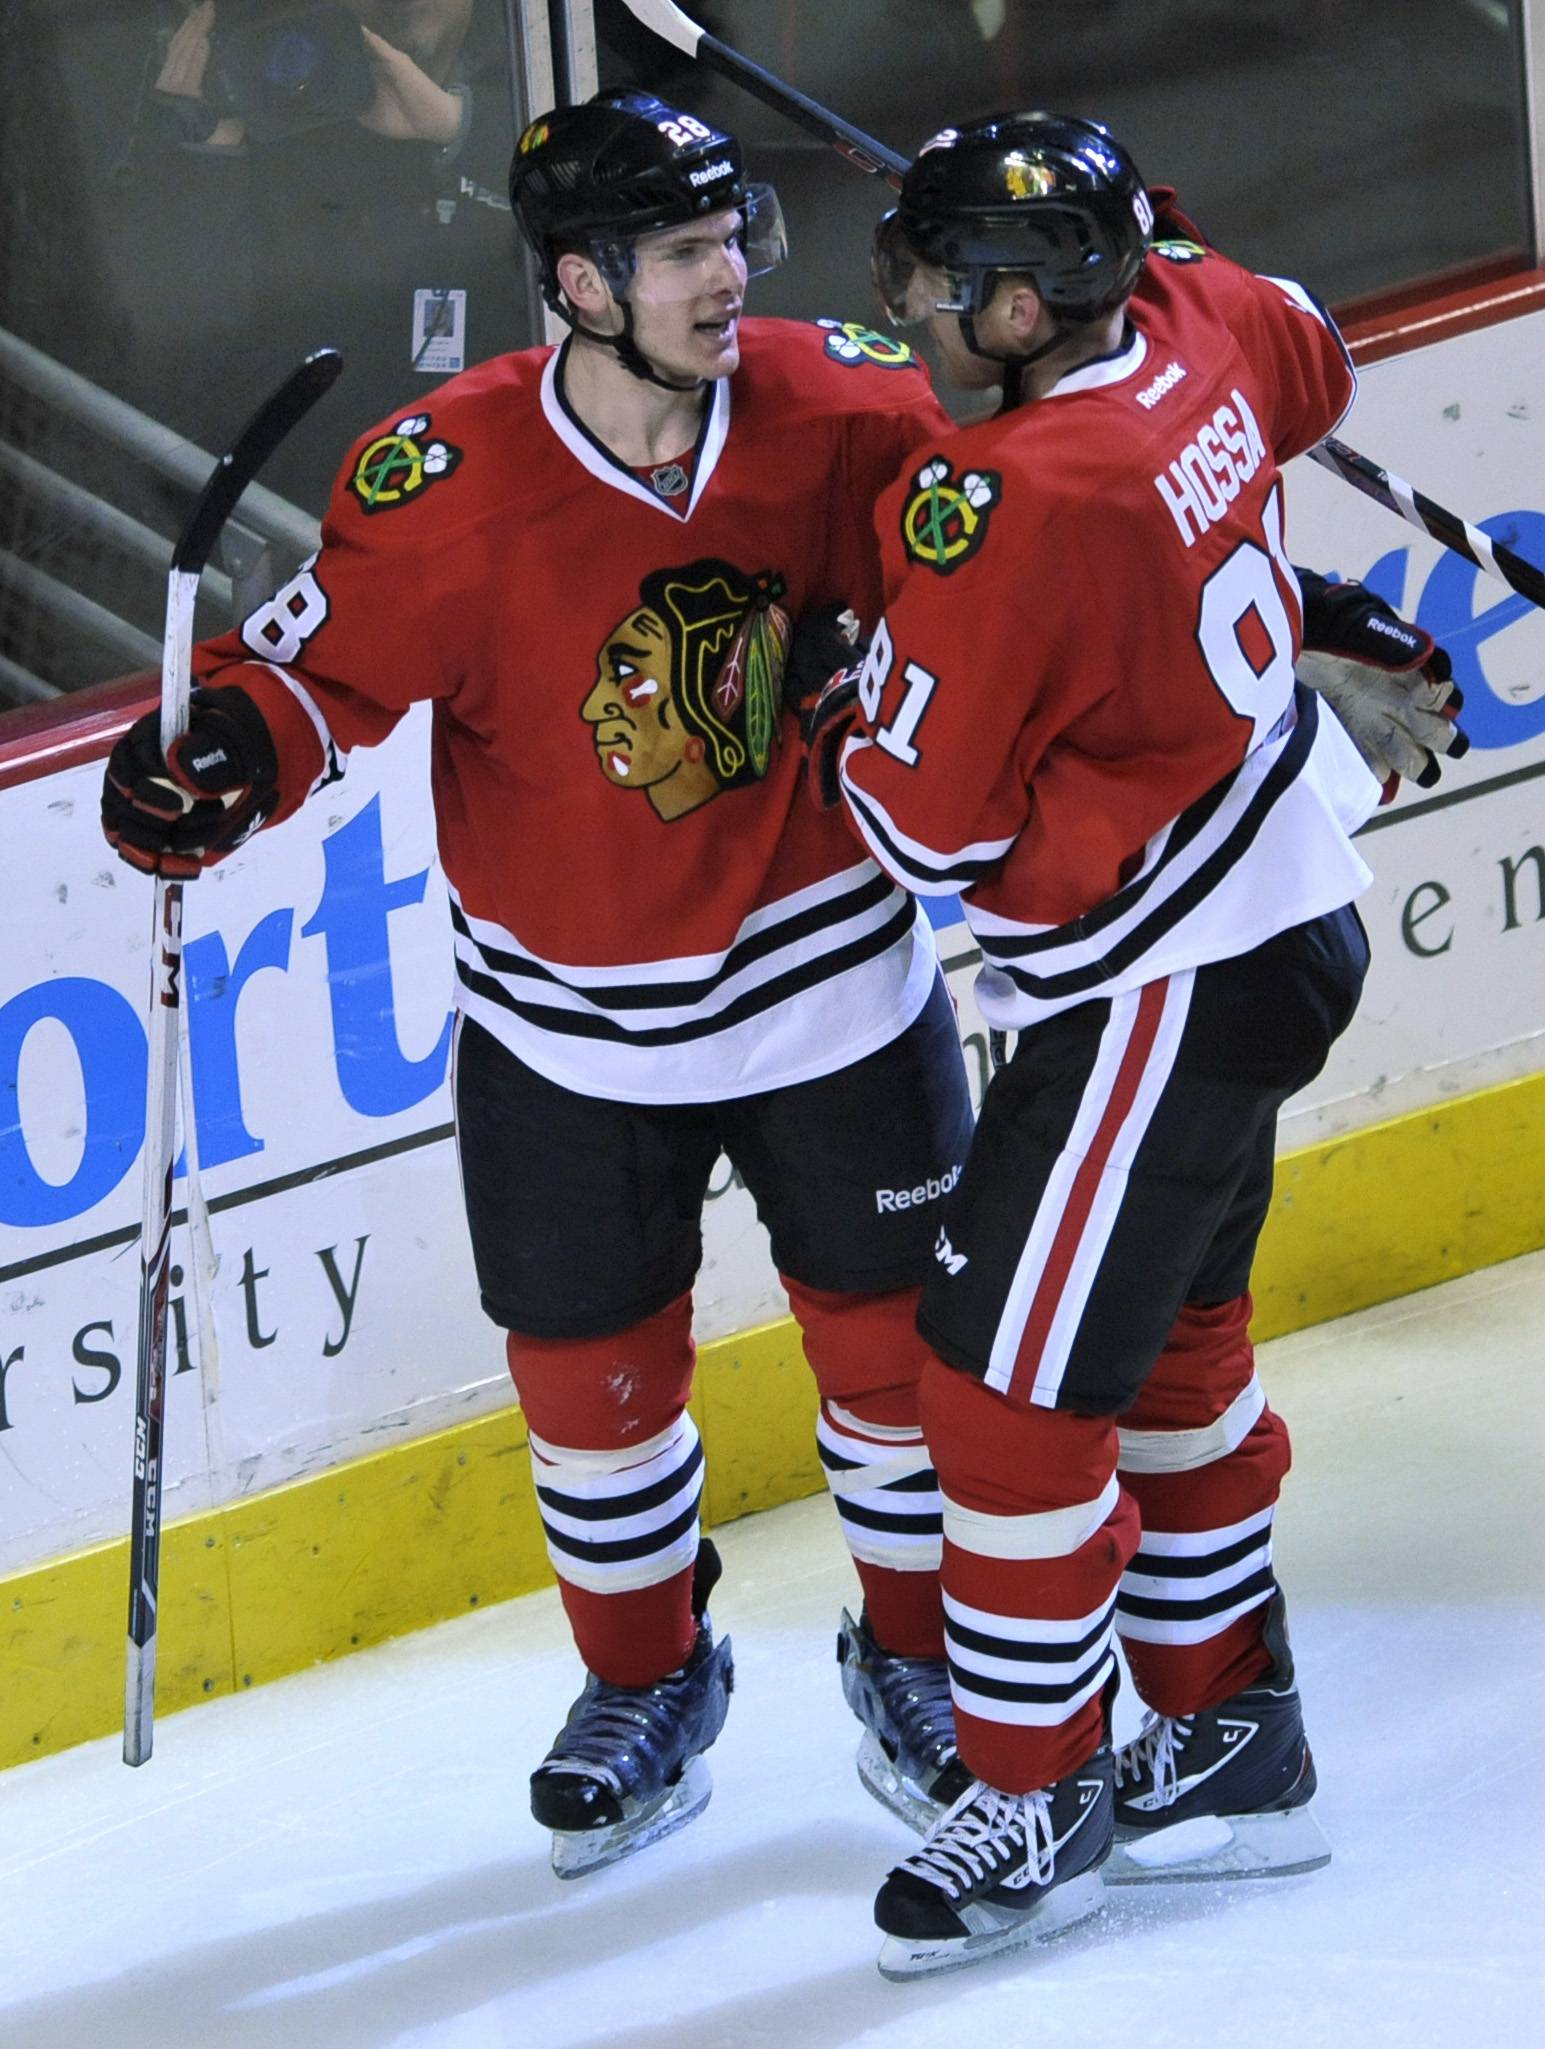 Ben Smith celebrates with teammate Marian Hossa (81), after scoring a goal against St. Louis in March. Smith has a career-high 25 points on the season.